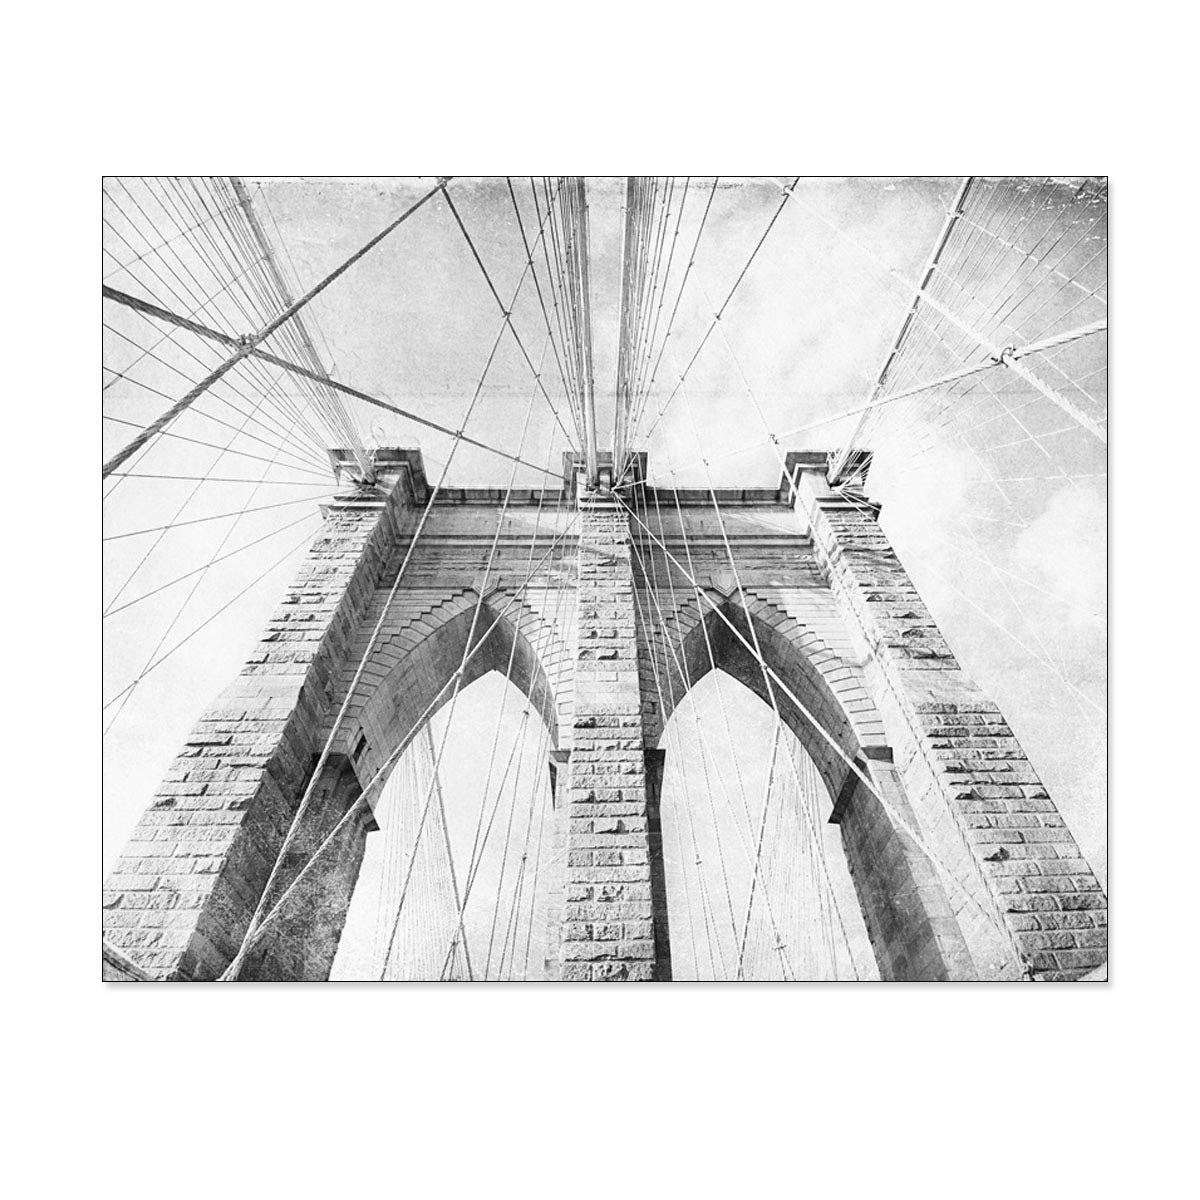 Brooklyn Bridge Architecture Beaufiful 8x10 Photo Print Art Wall Decor A902